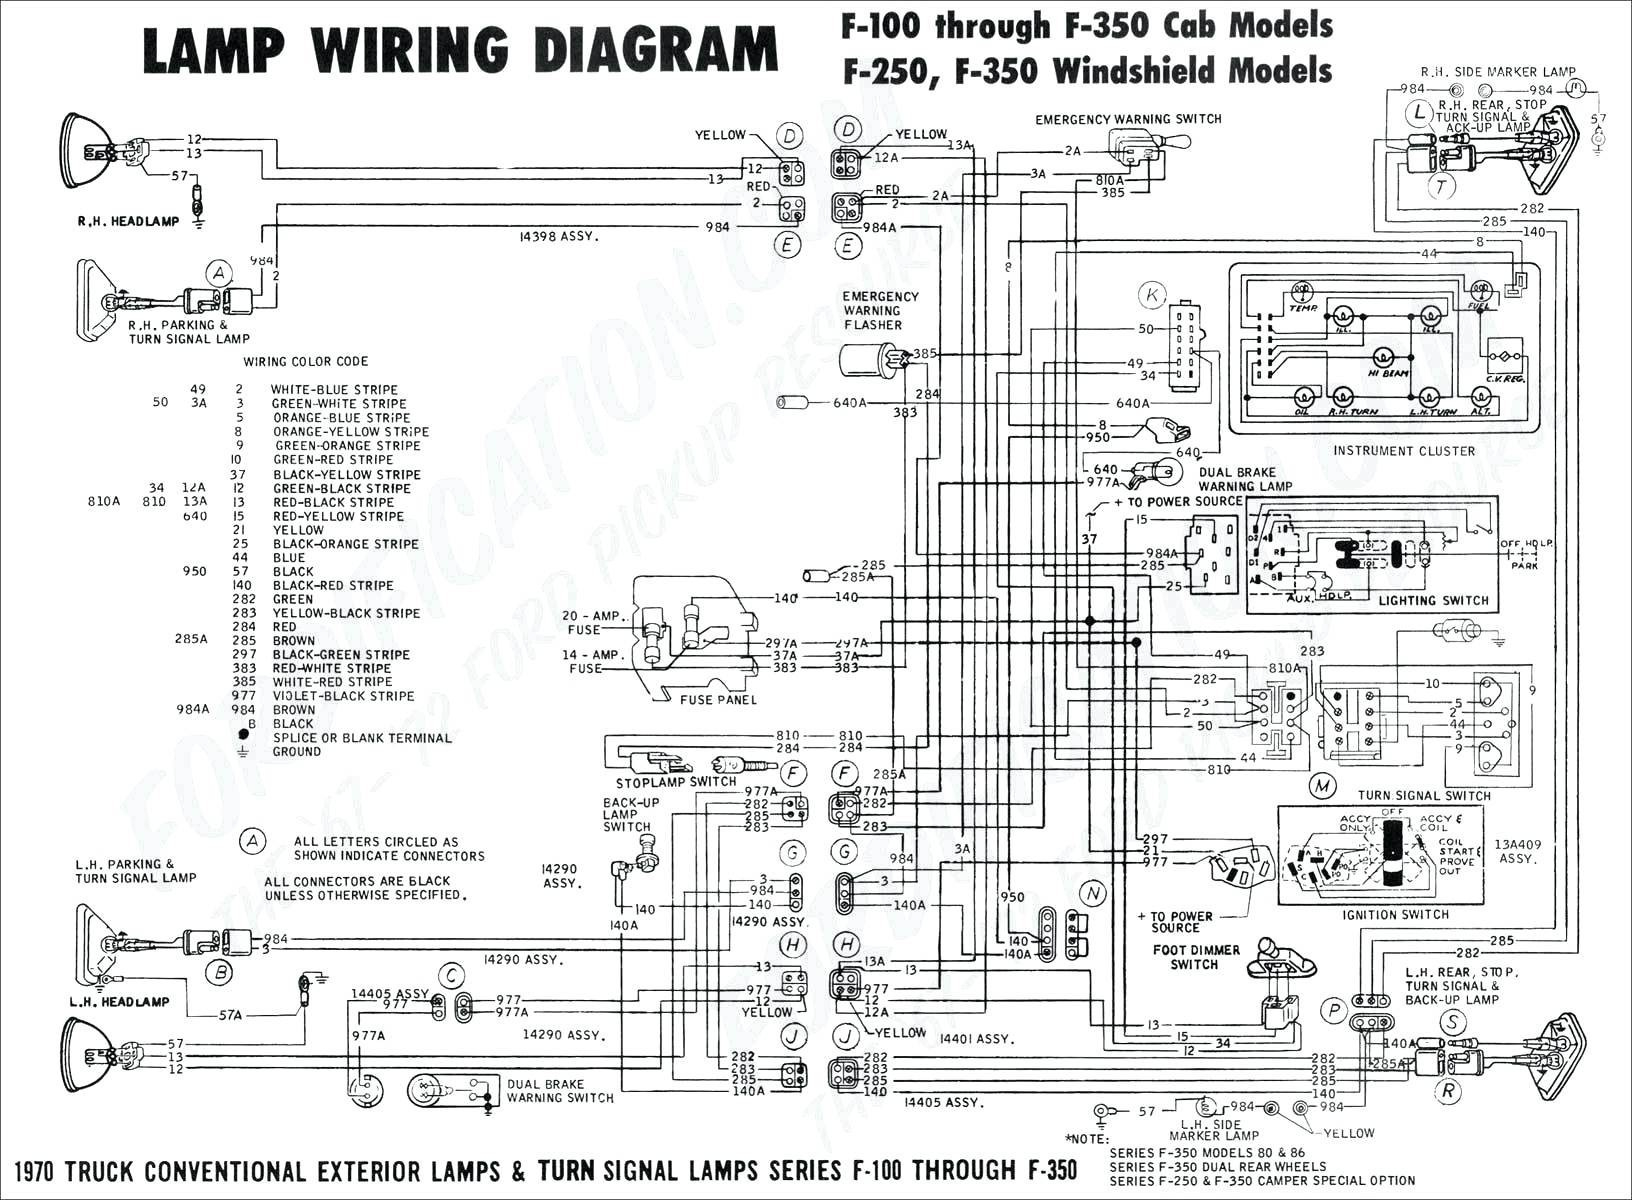 2005 Mercury Dash Light Wiring - Wiring Diagram & Cable ... on